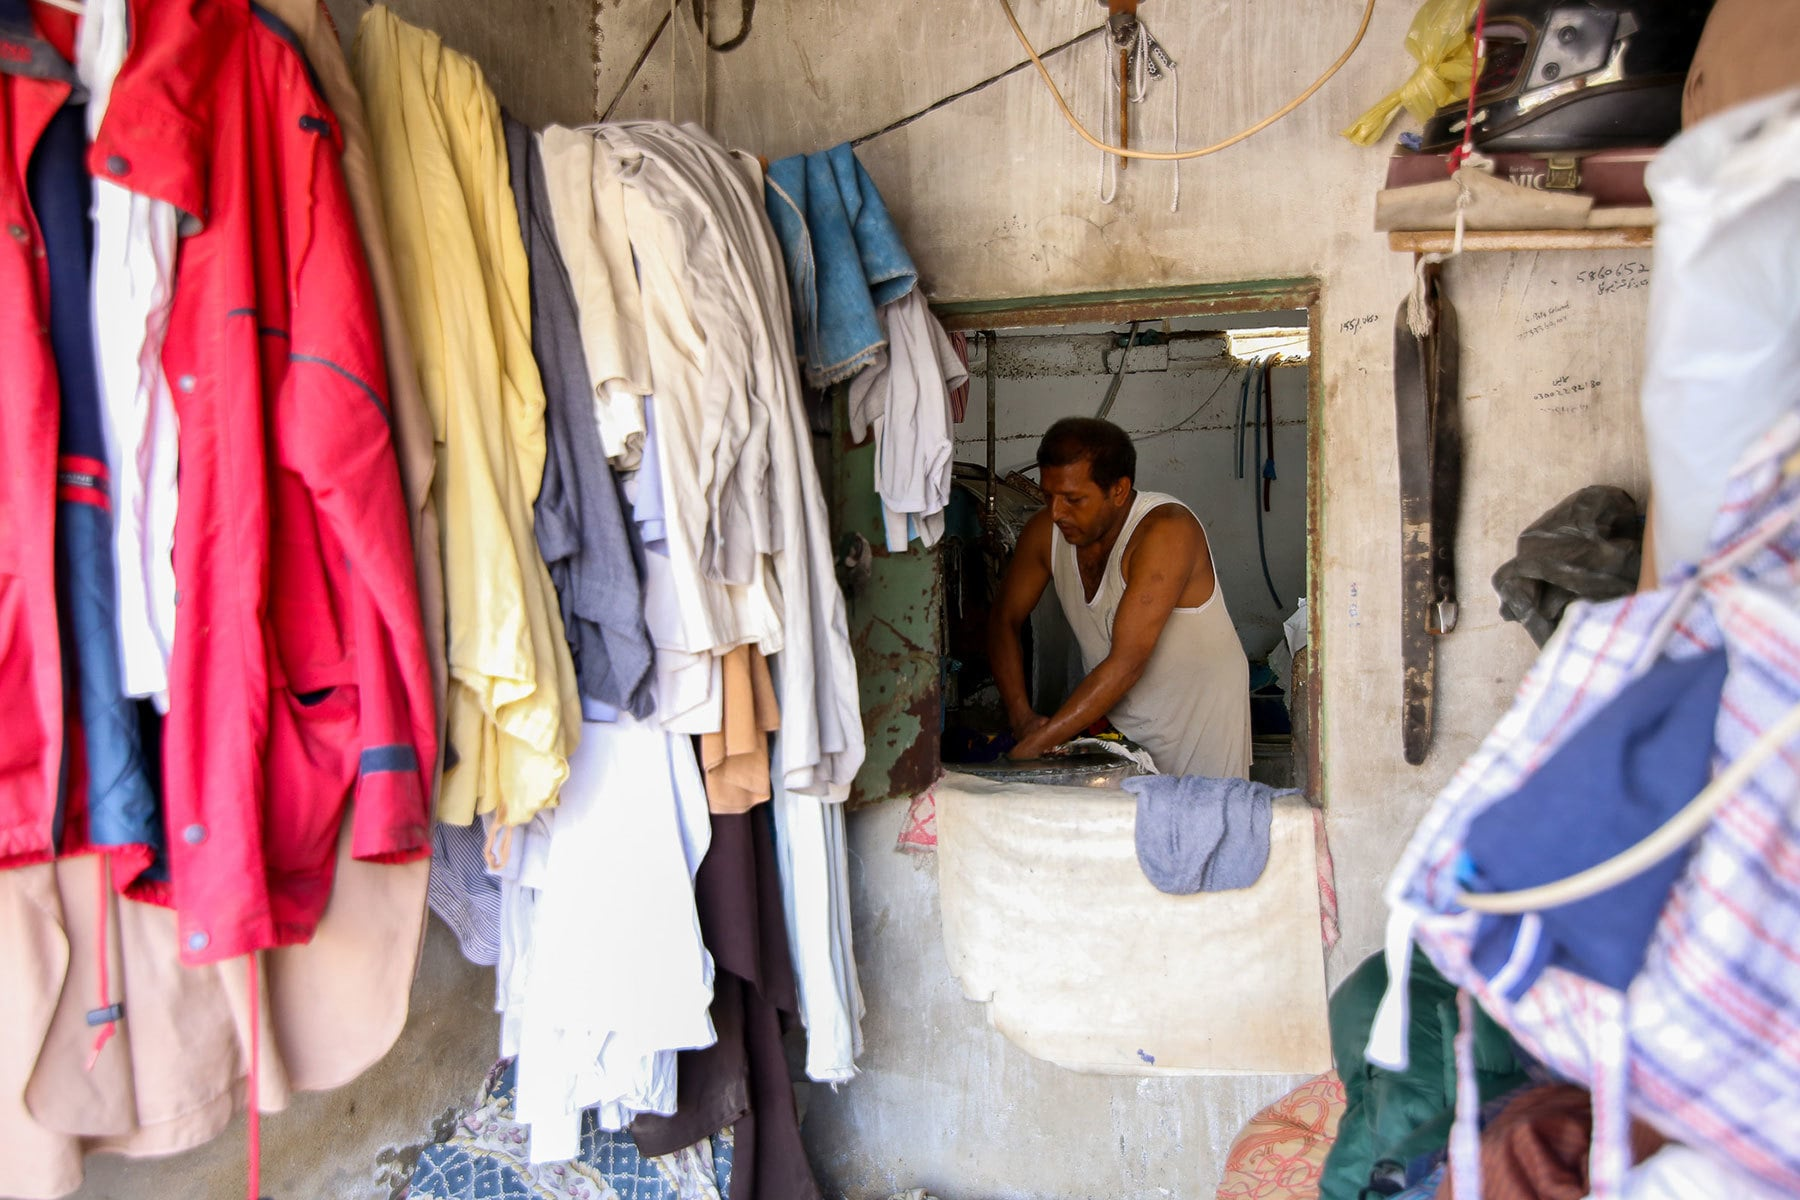 Handling a dryer, Miraj visits his shop twice a day.